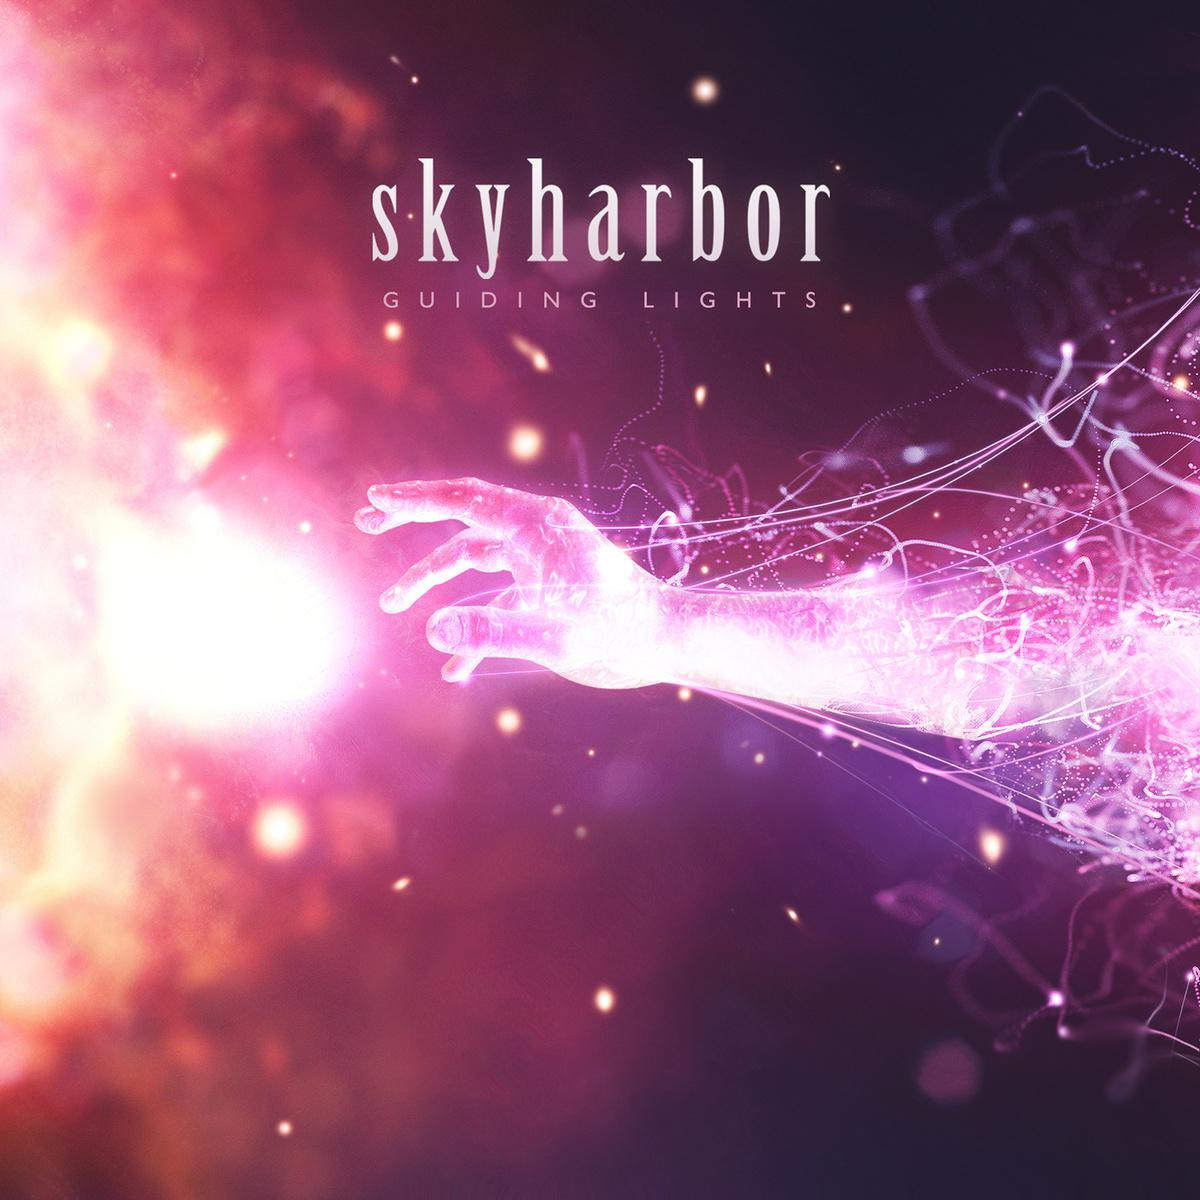 Skyharbor – Guiding Lights CD Review